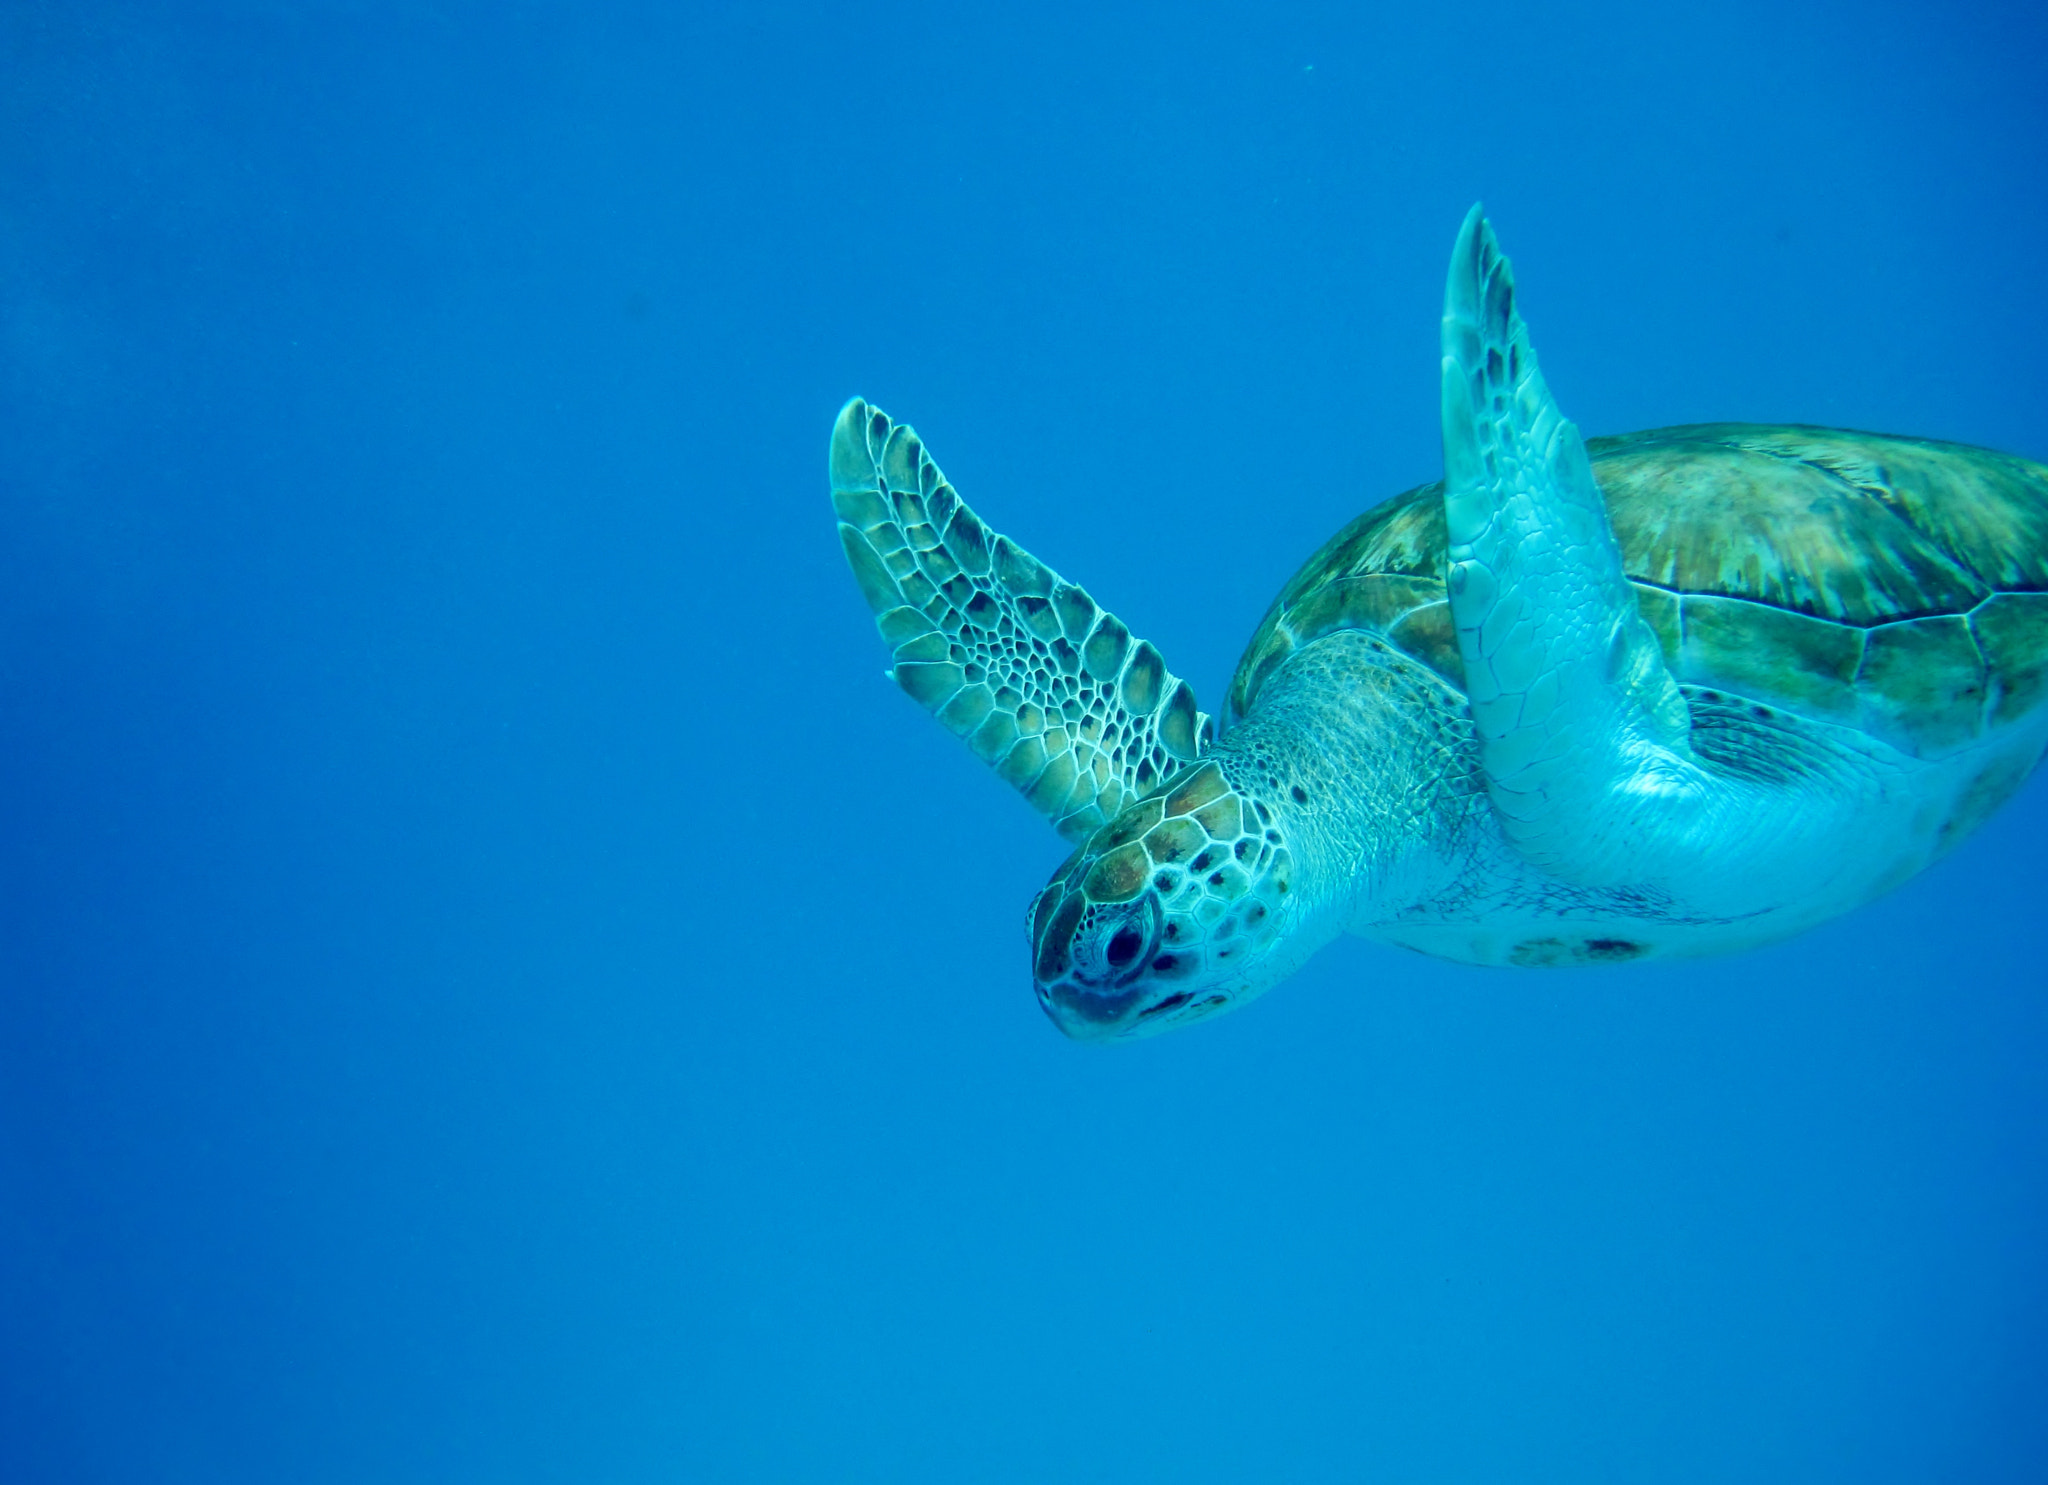 Photograph Green Turtle by Robert Deane on 500px